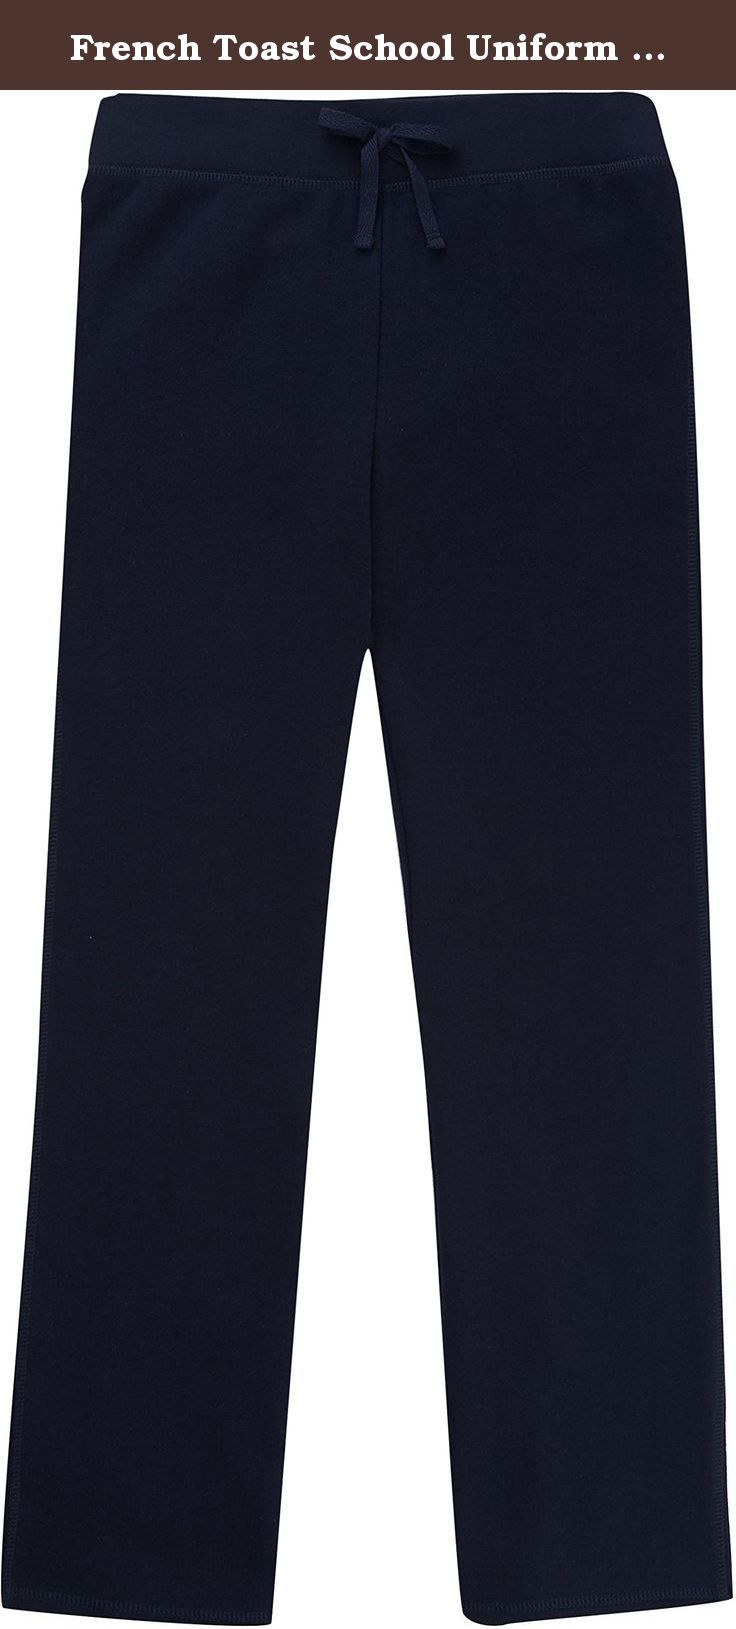 French Toast School Uniform Girls Fleece Sweat Pants, Navy, Large (10/12). RIB WAISTBAND WITH CONCEALED ELASTIC. DECORATIVE NON-FUNCTIONAL BOW. COTTON BLEND FLEECE, 240 GSM.